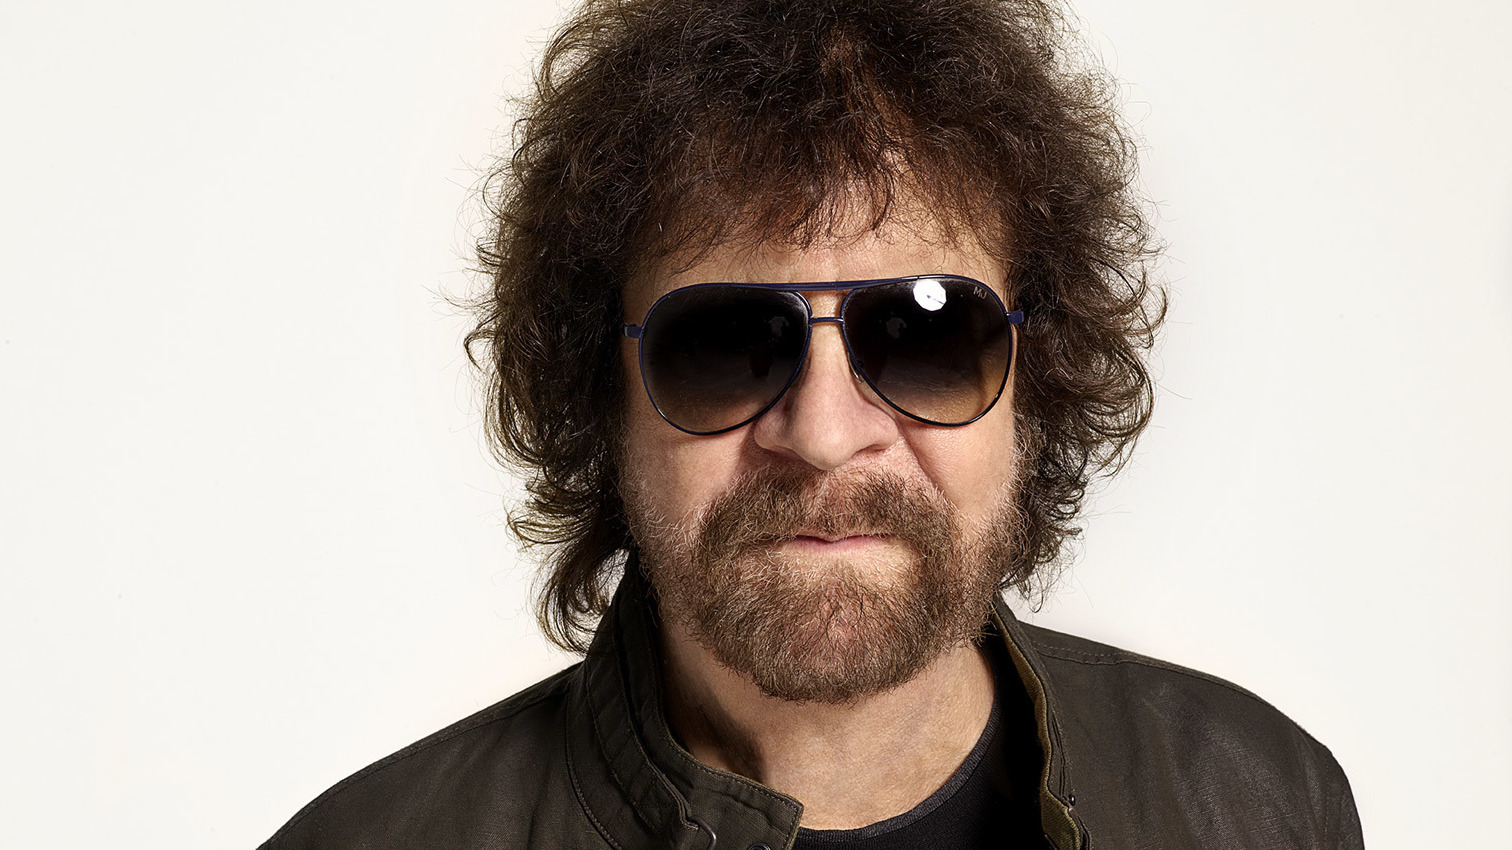 From Studios To Stadiums: Jeff Lynne And The Story Of ELO